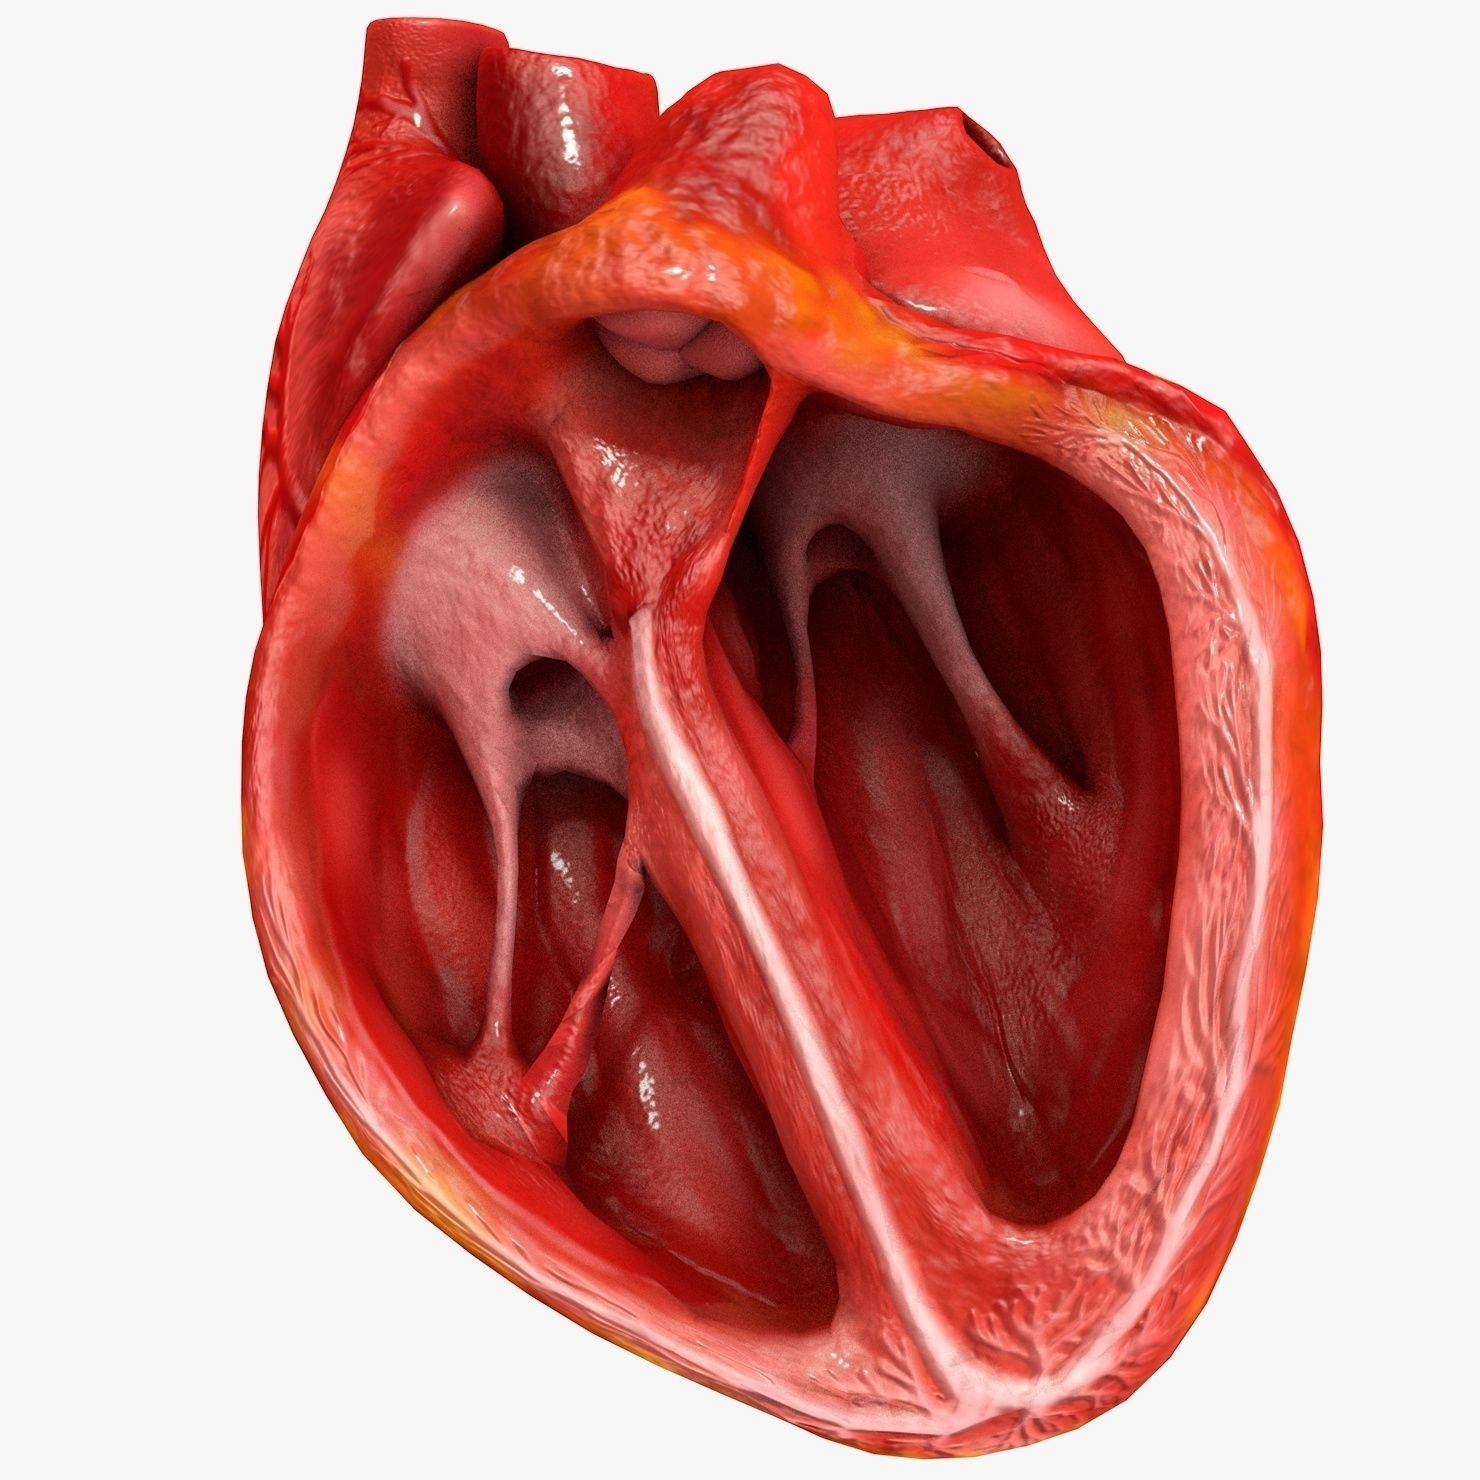 Animated human heart - photo#46